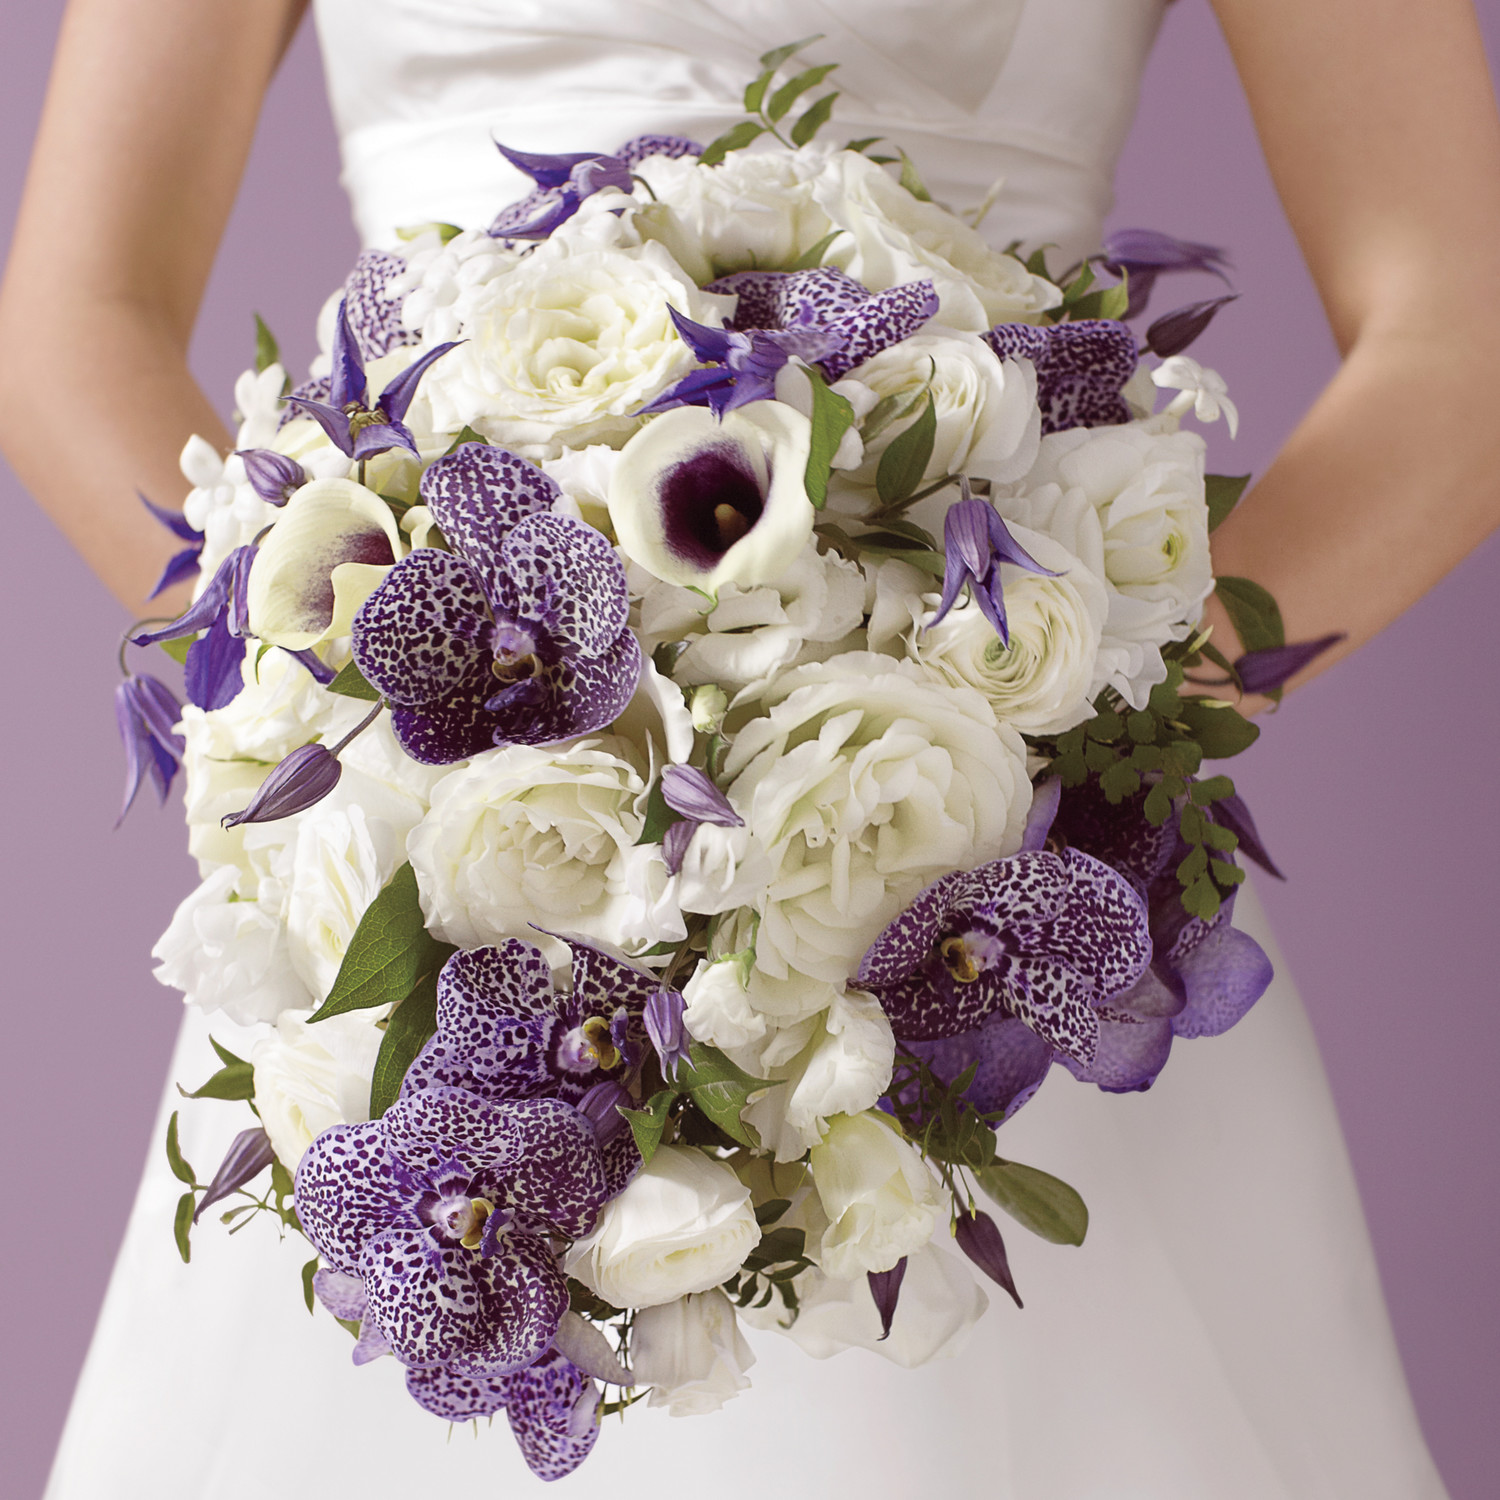 Wedding Flowers Bouquet Ideas: Cool-Weather Wedding Flowers